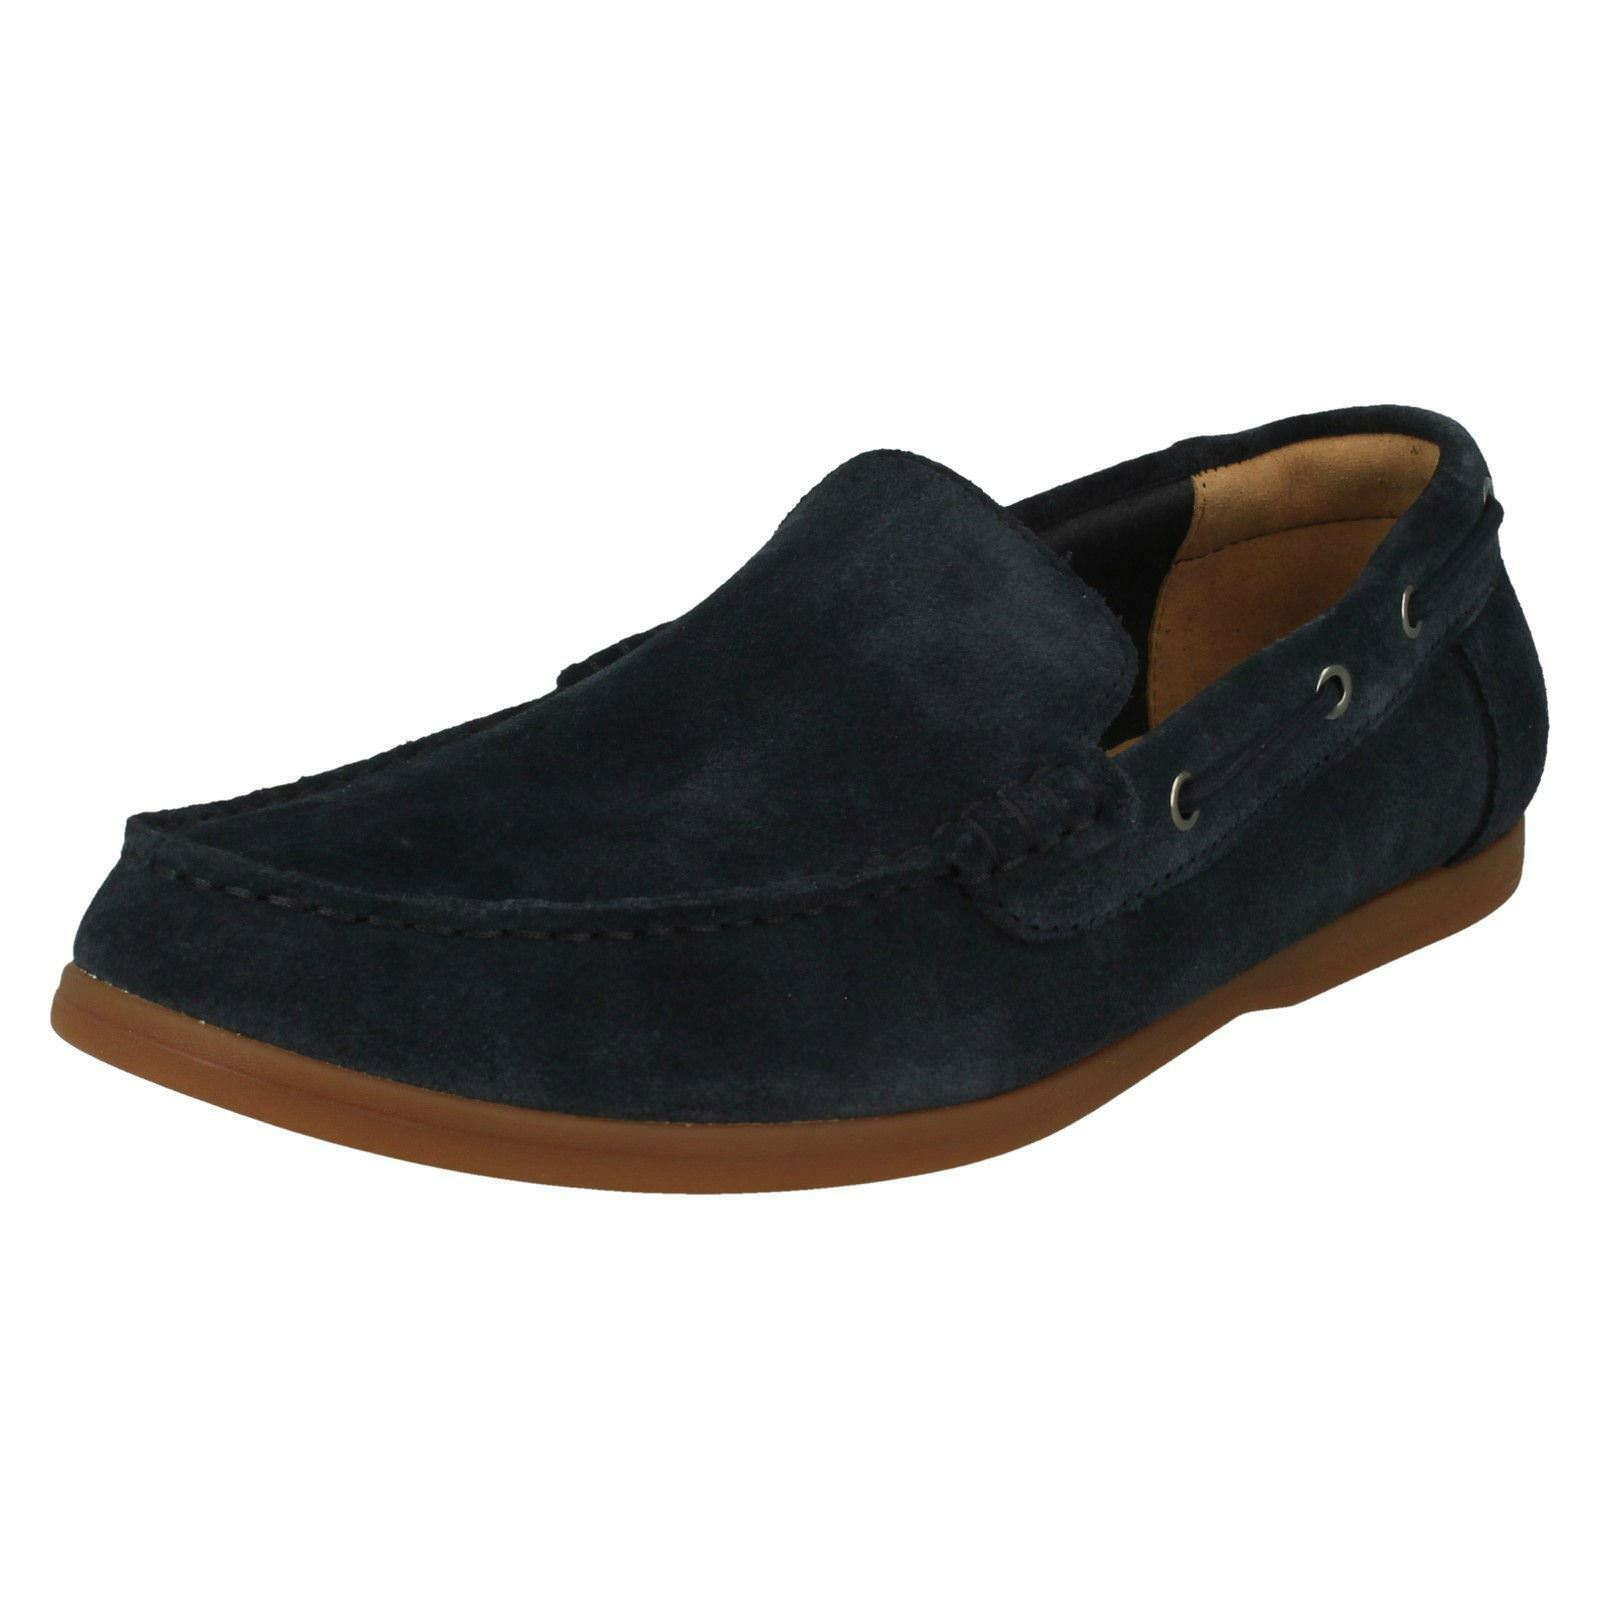 Mens Clarks Morven Sun Navy Suede Leather Slip On Shoes G Fitting